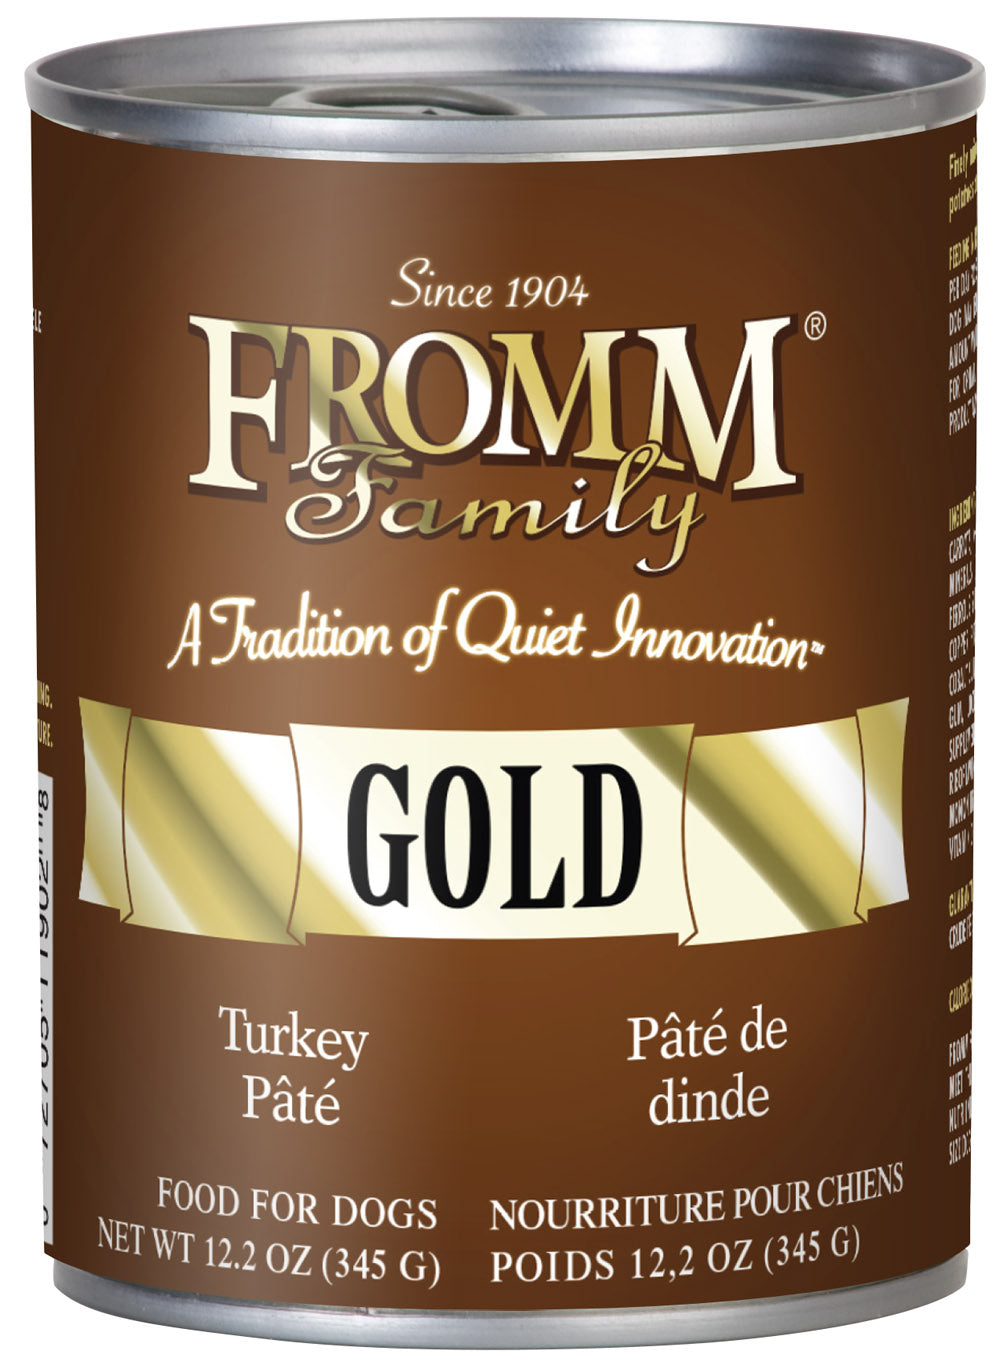 Fromm Gold Turkey Pate Canned Wet Dog Food at NJPetSupply.com